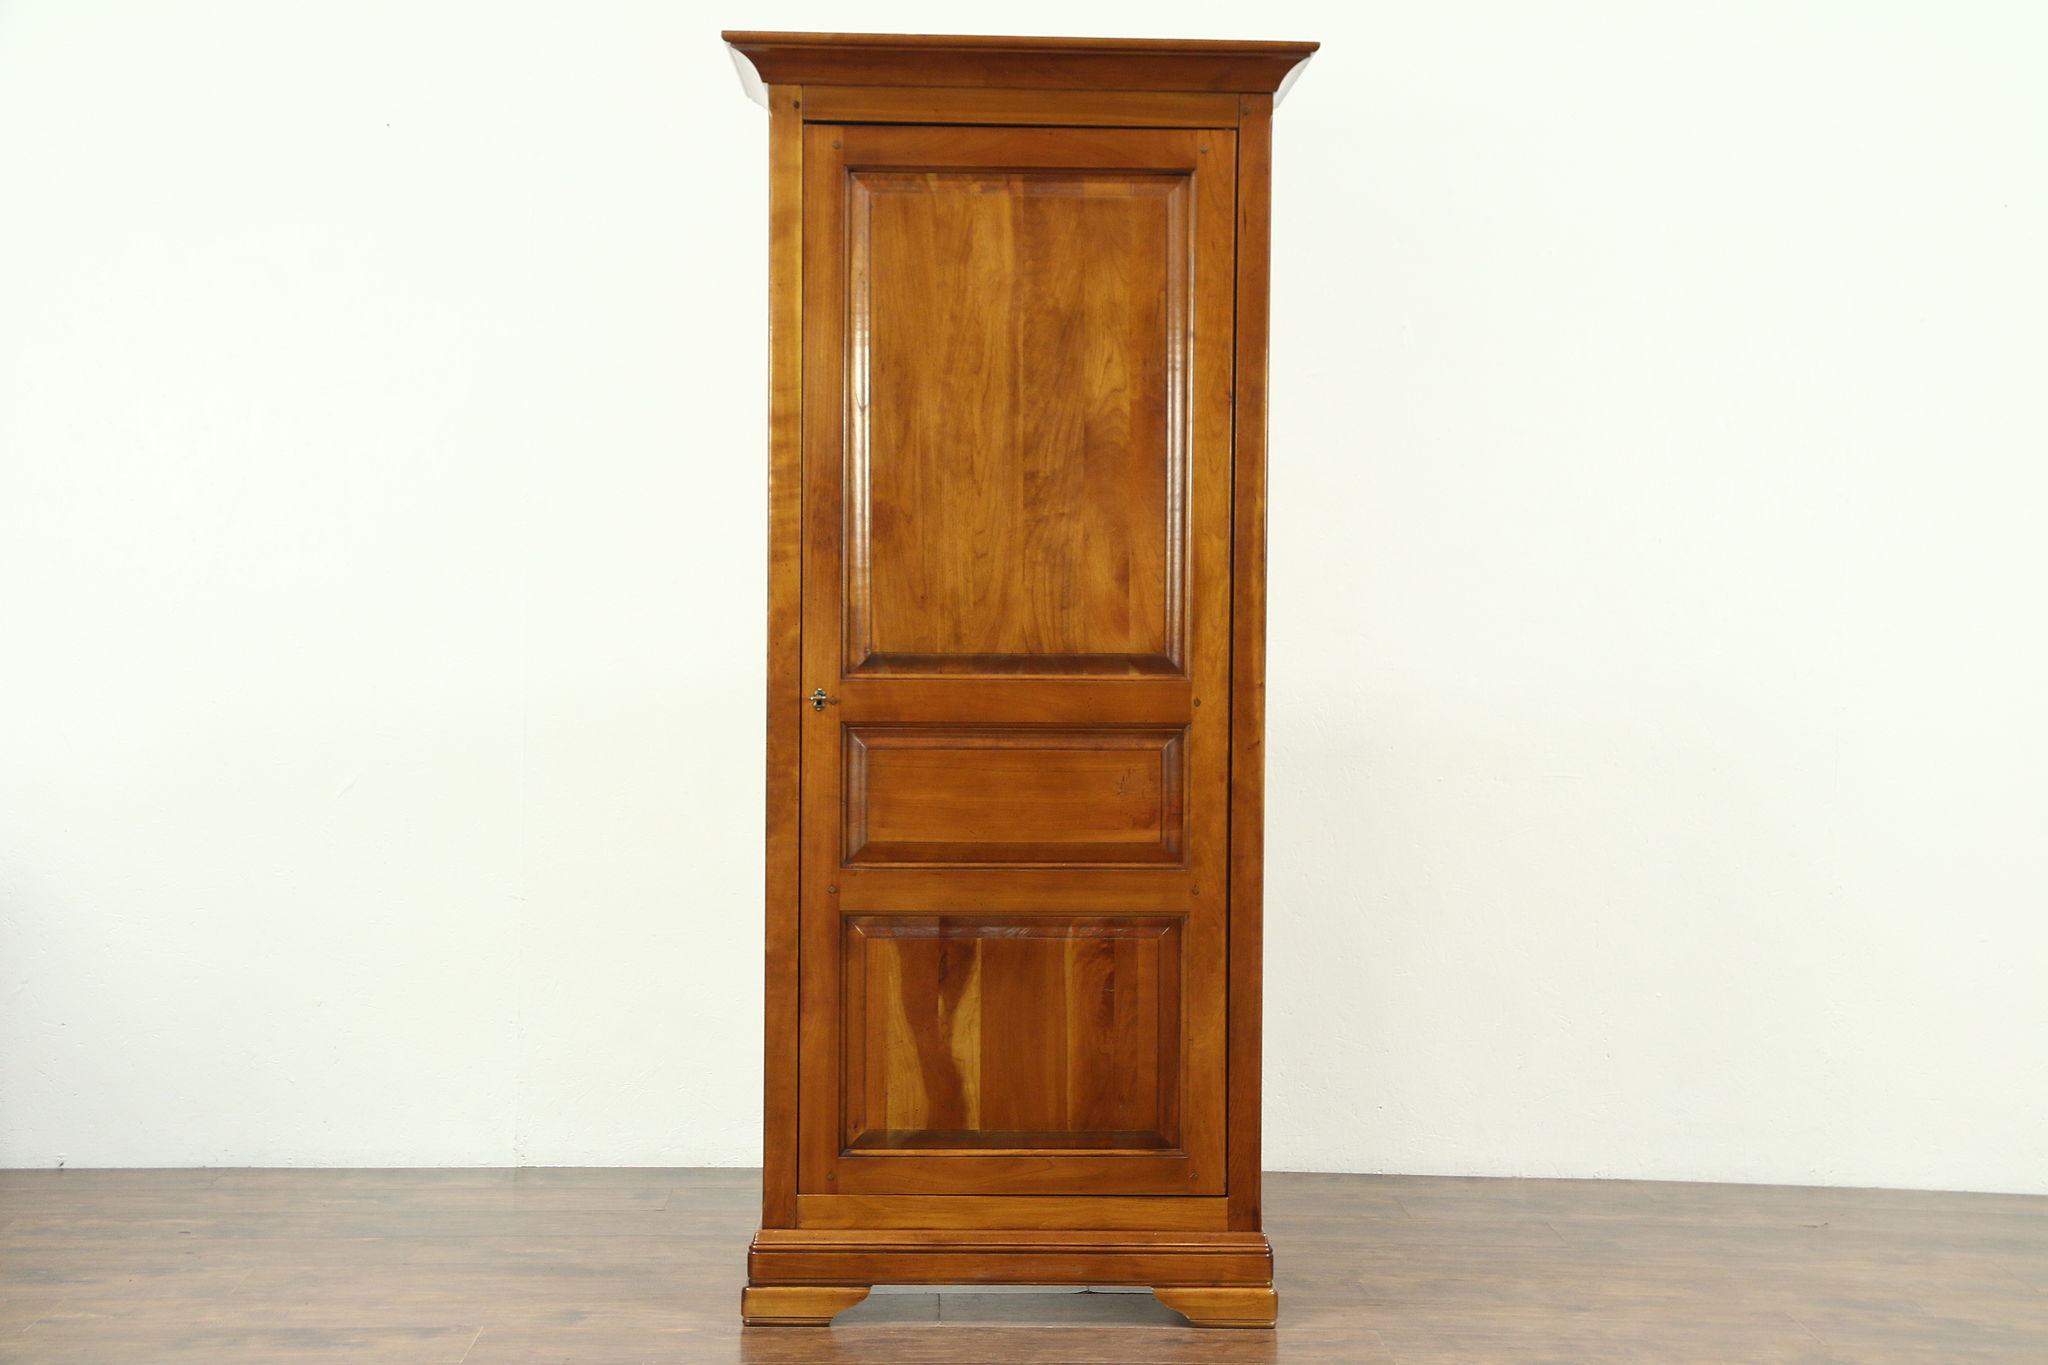 Genial Cherry Vintage Armoire, Linen Cabinet Or Pantry Cupboard, Raised Panels  Photo